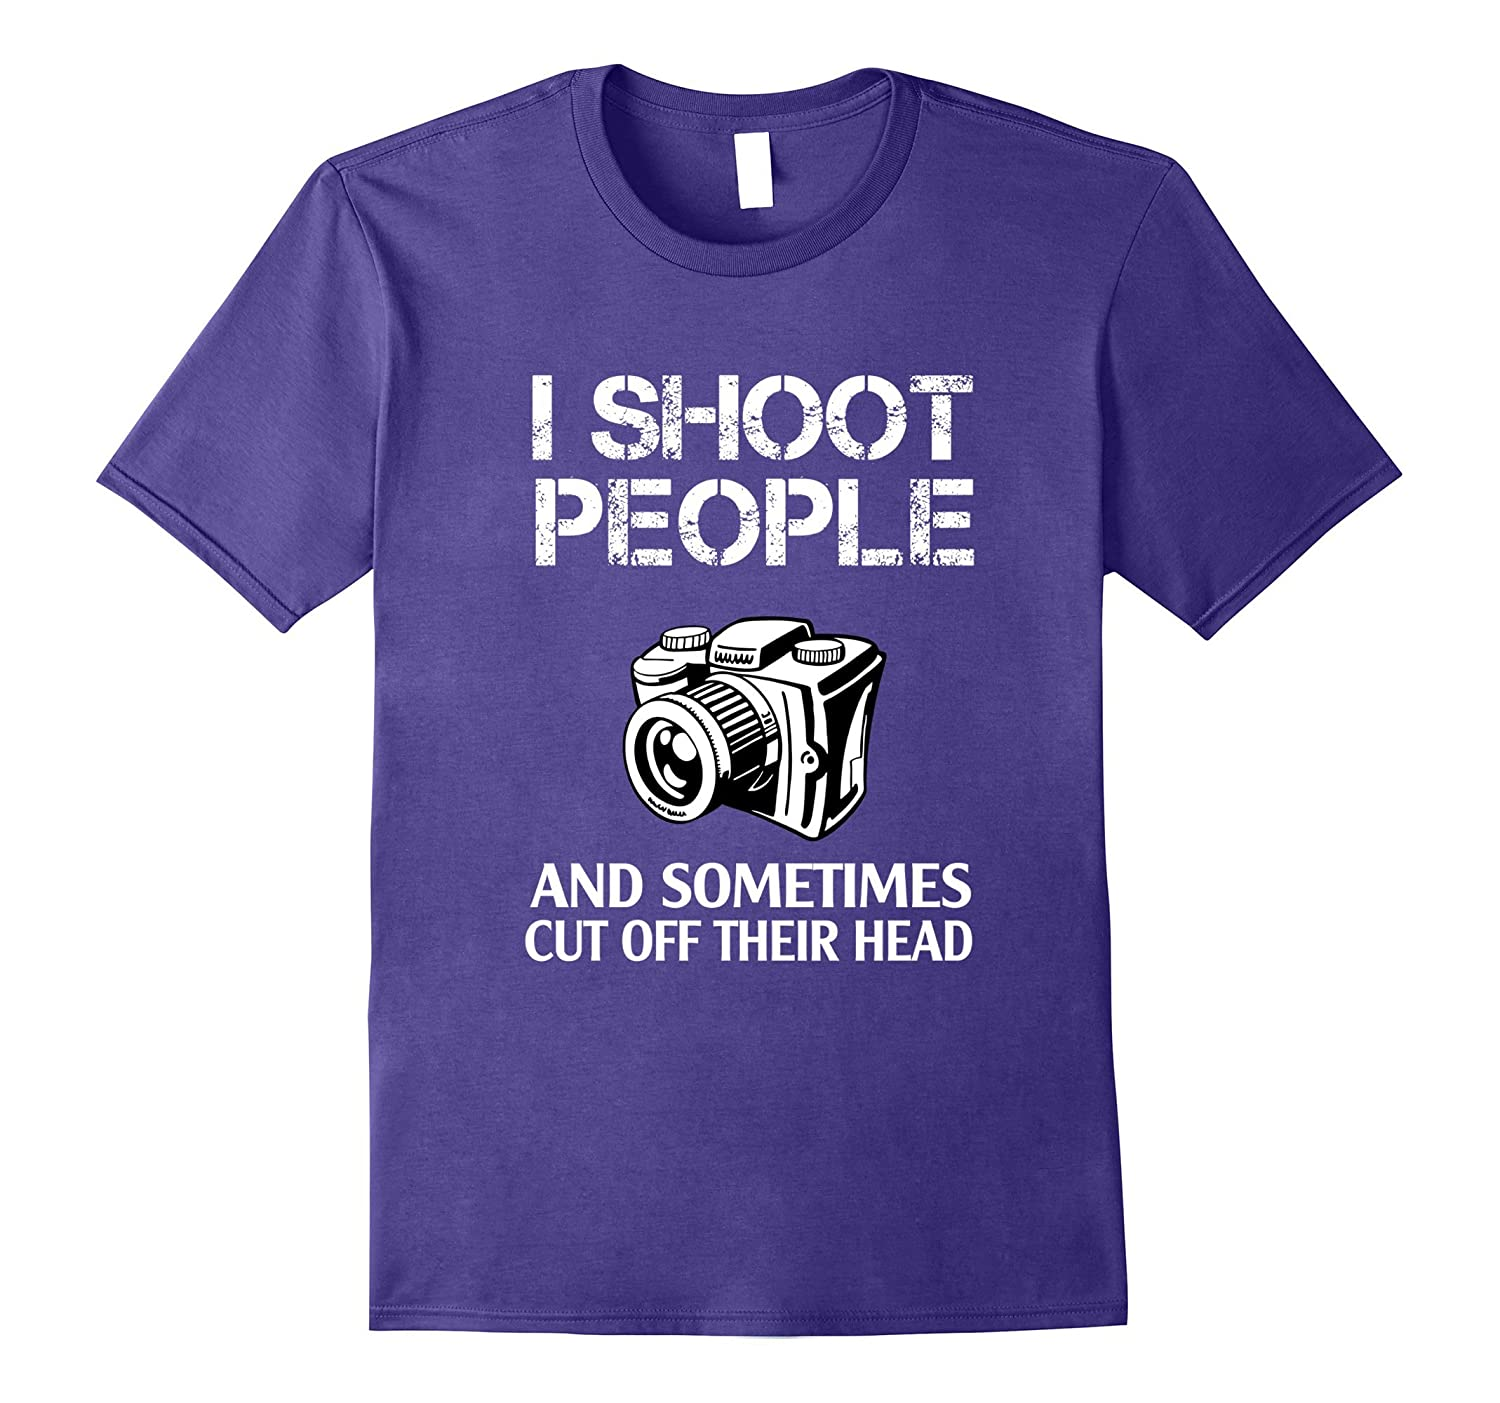 I Shoot People And Sometimes Cut Off Their Head T-shirt-Vaci